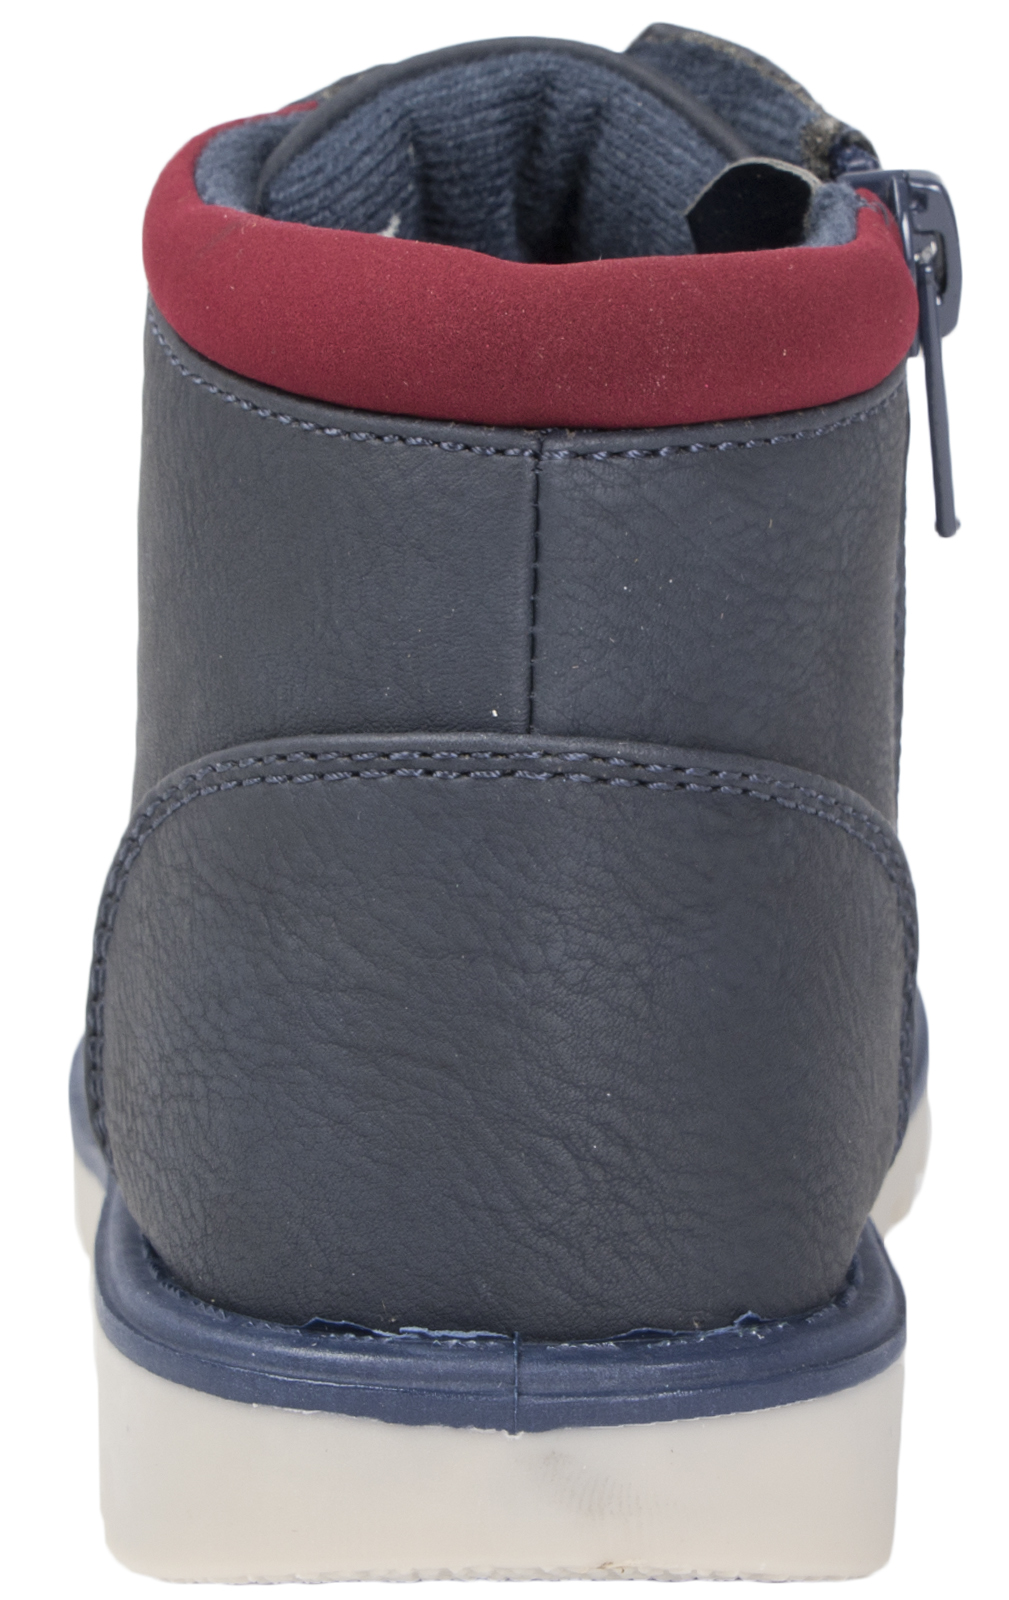 Boys Buckle My Shoe NEW HAMPSHIRE Touch Fastening Smart Boot Black Size 8-2